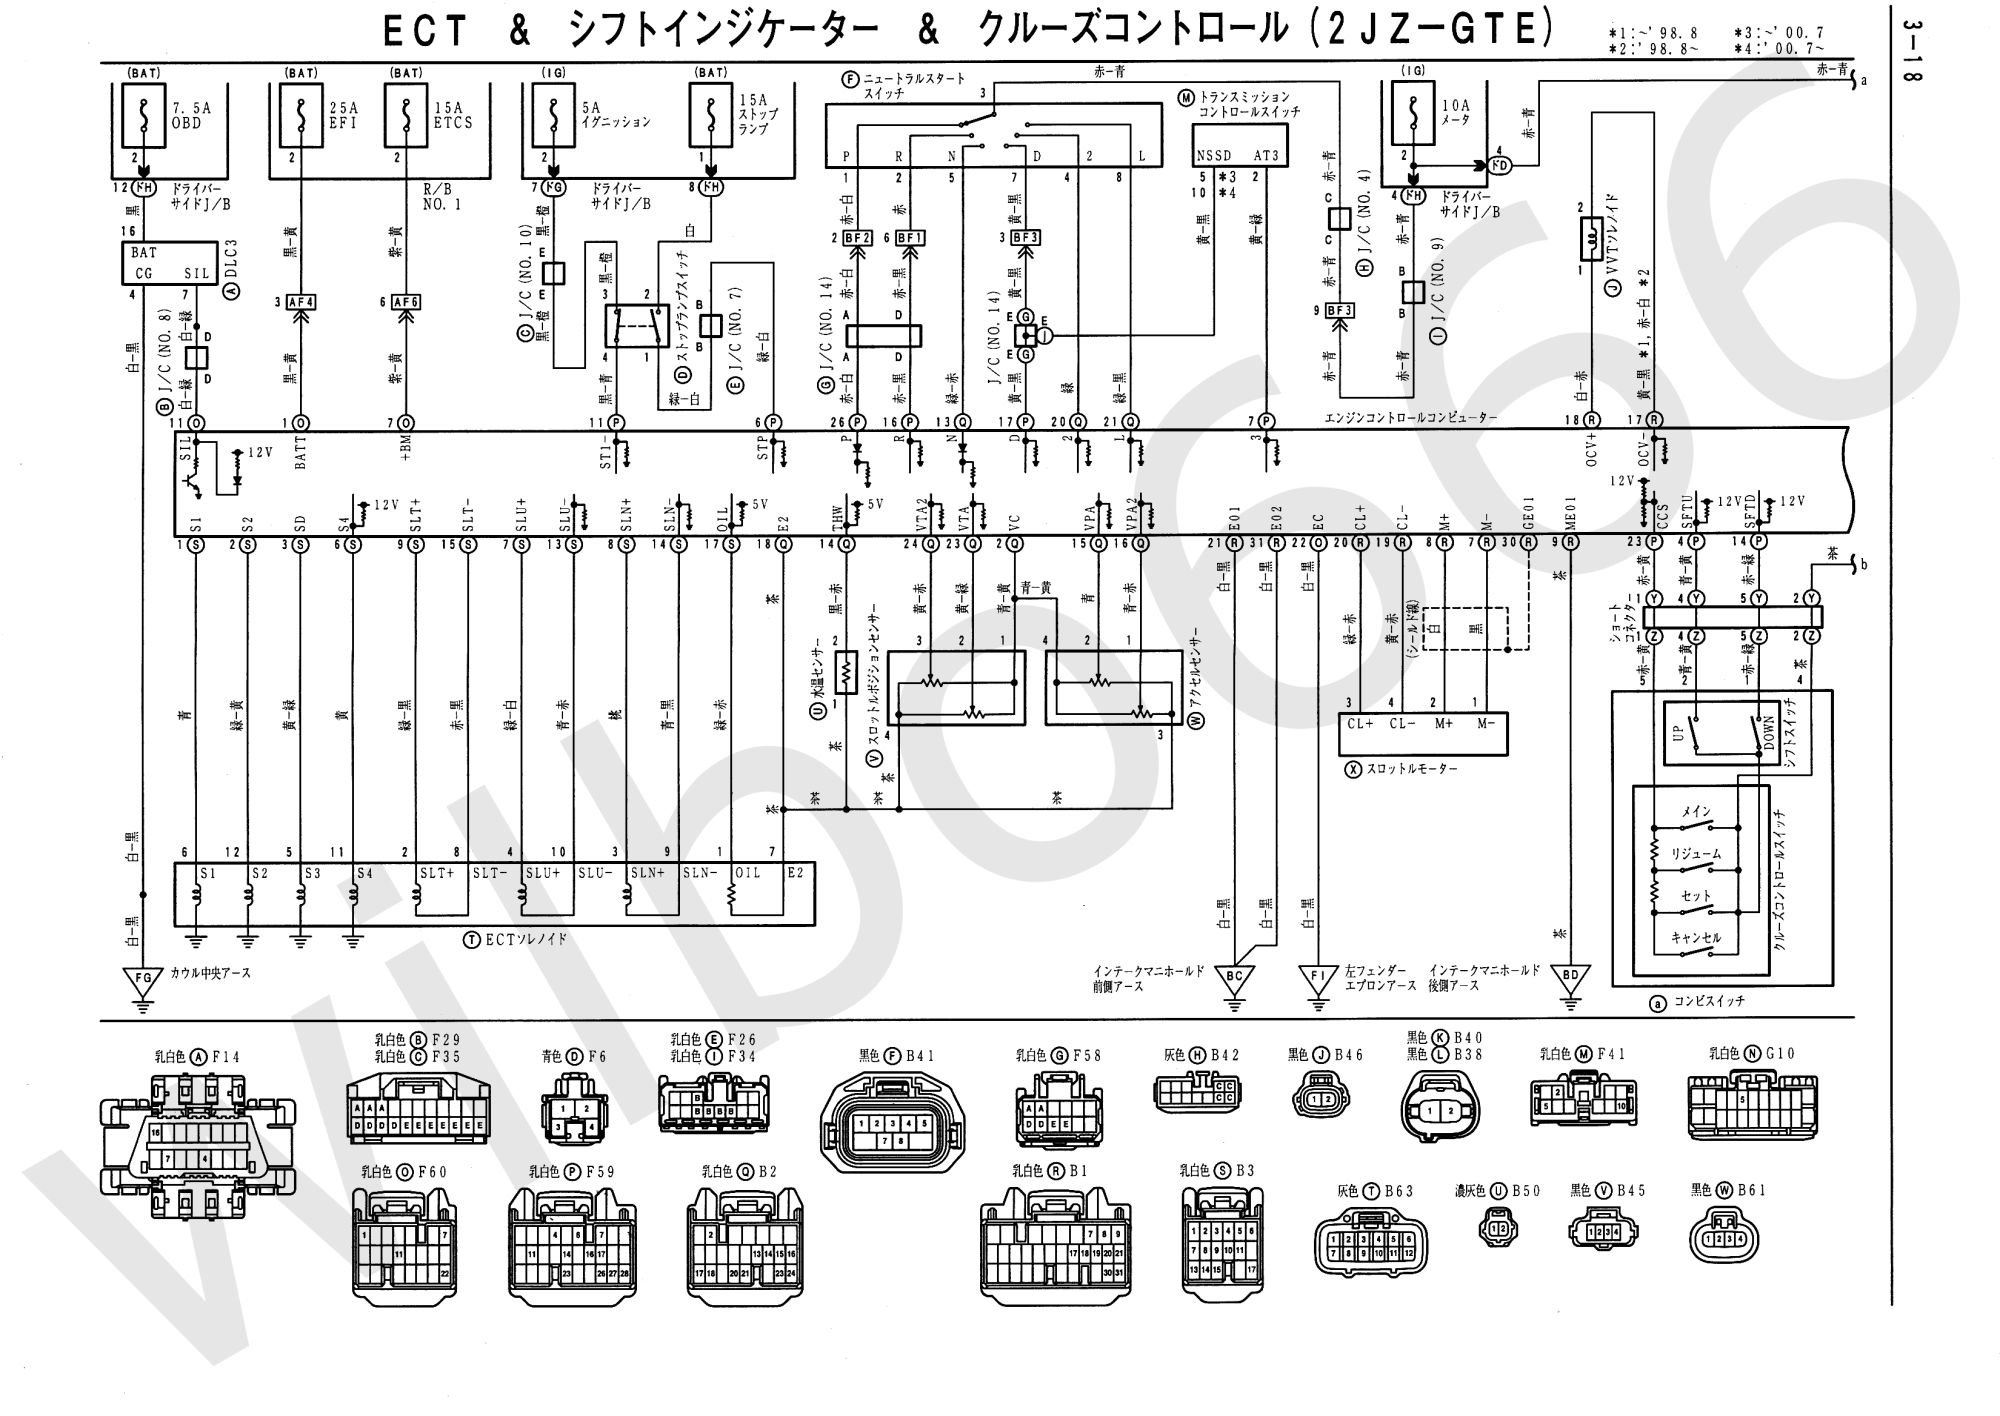 Apexi Safc Wiring Diagram 2jz Ge - Wiring Diagrams on